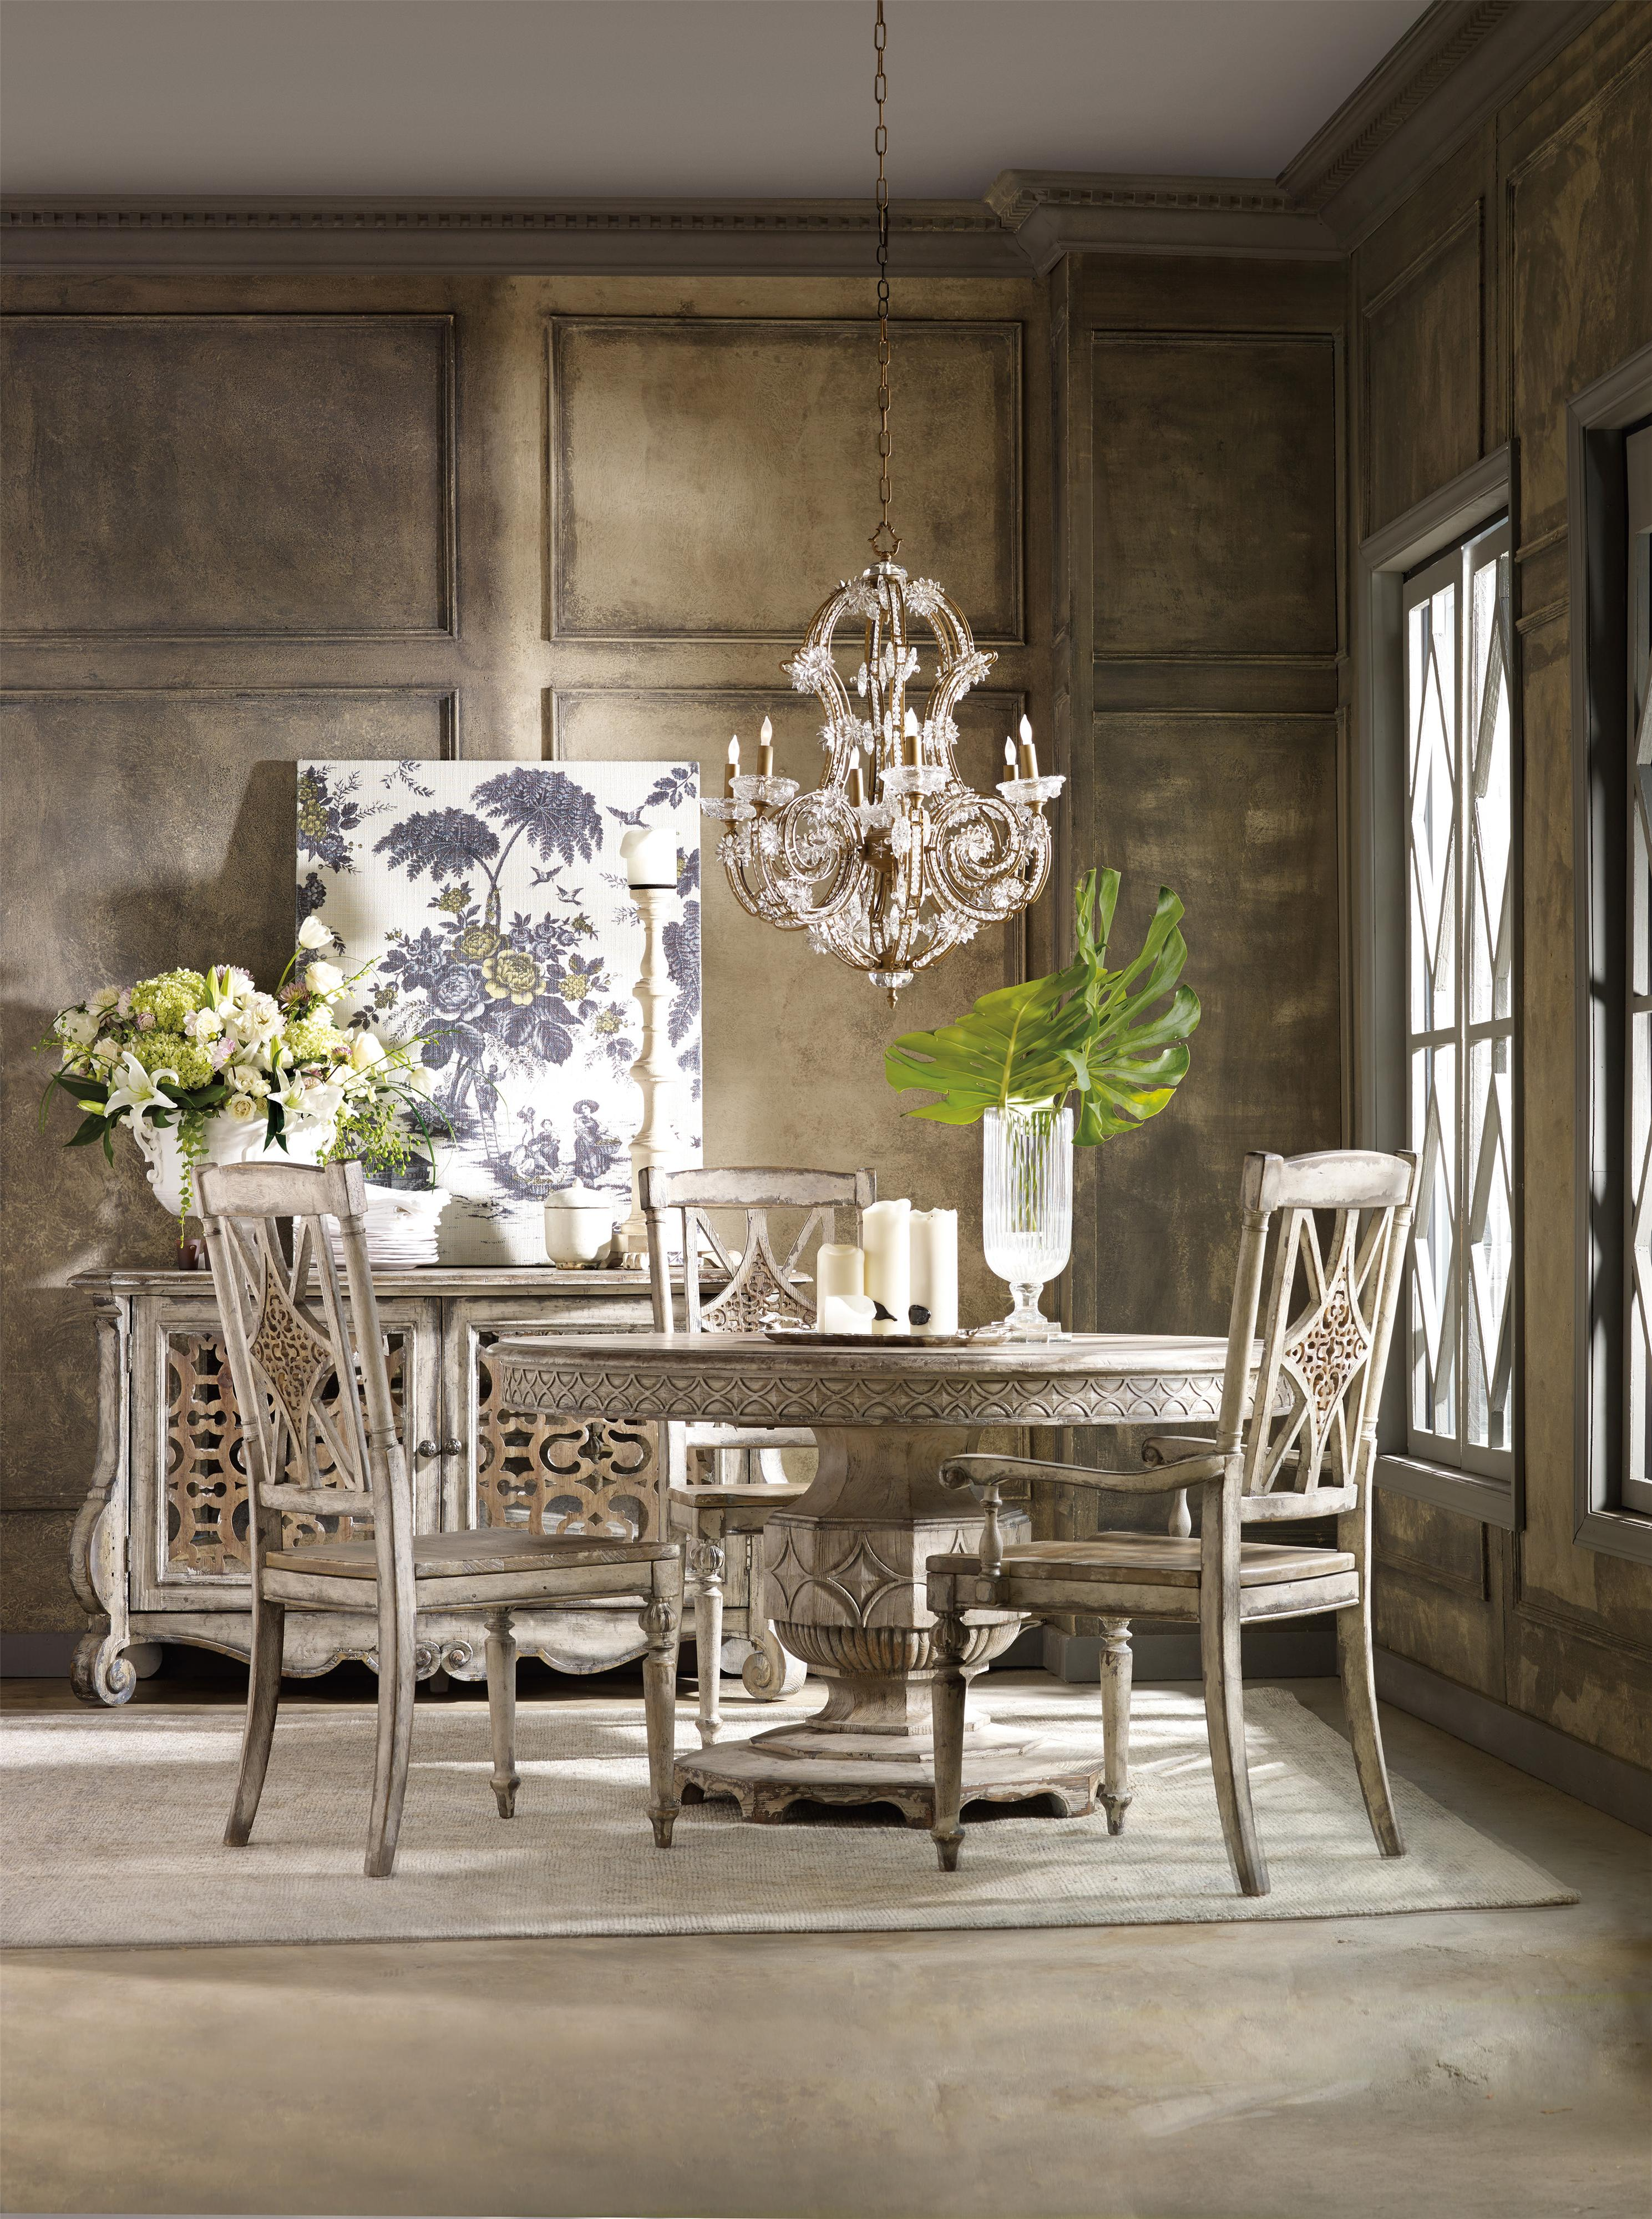 Hooker Furniture Chatelet Casual Dining Room Group | DuBois Furniture |  Casual Dining Room Groups Waco, Temple, Killeen, Texas